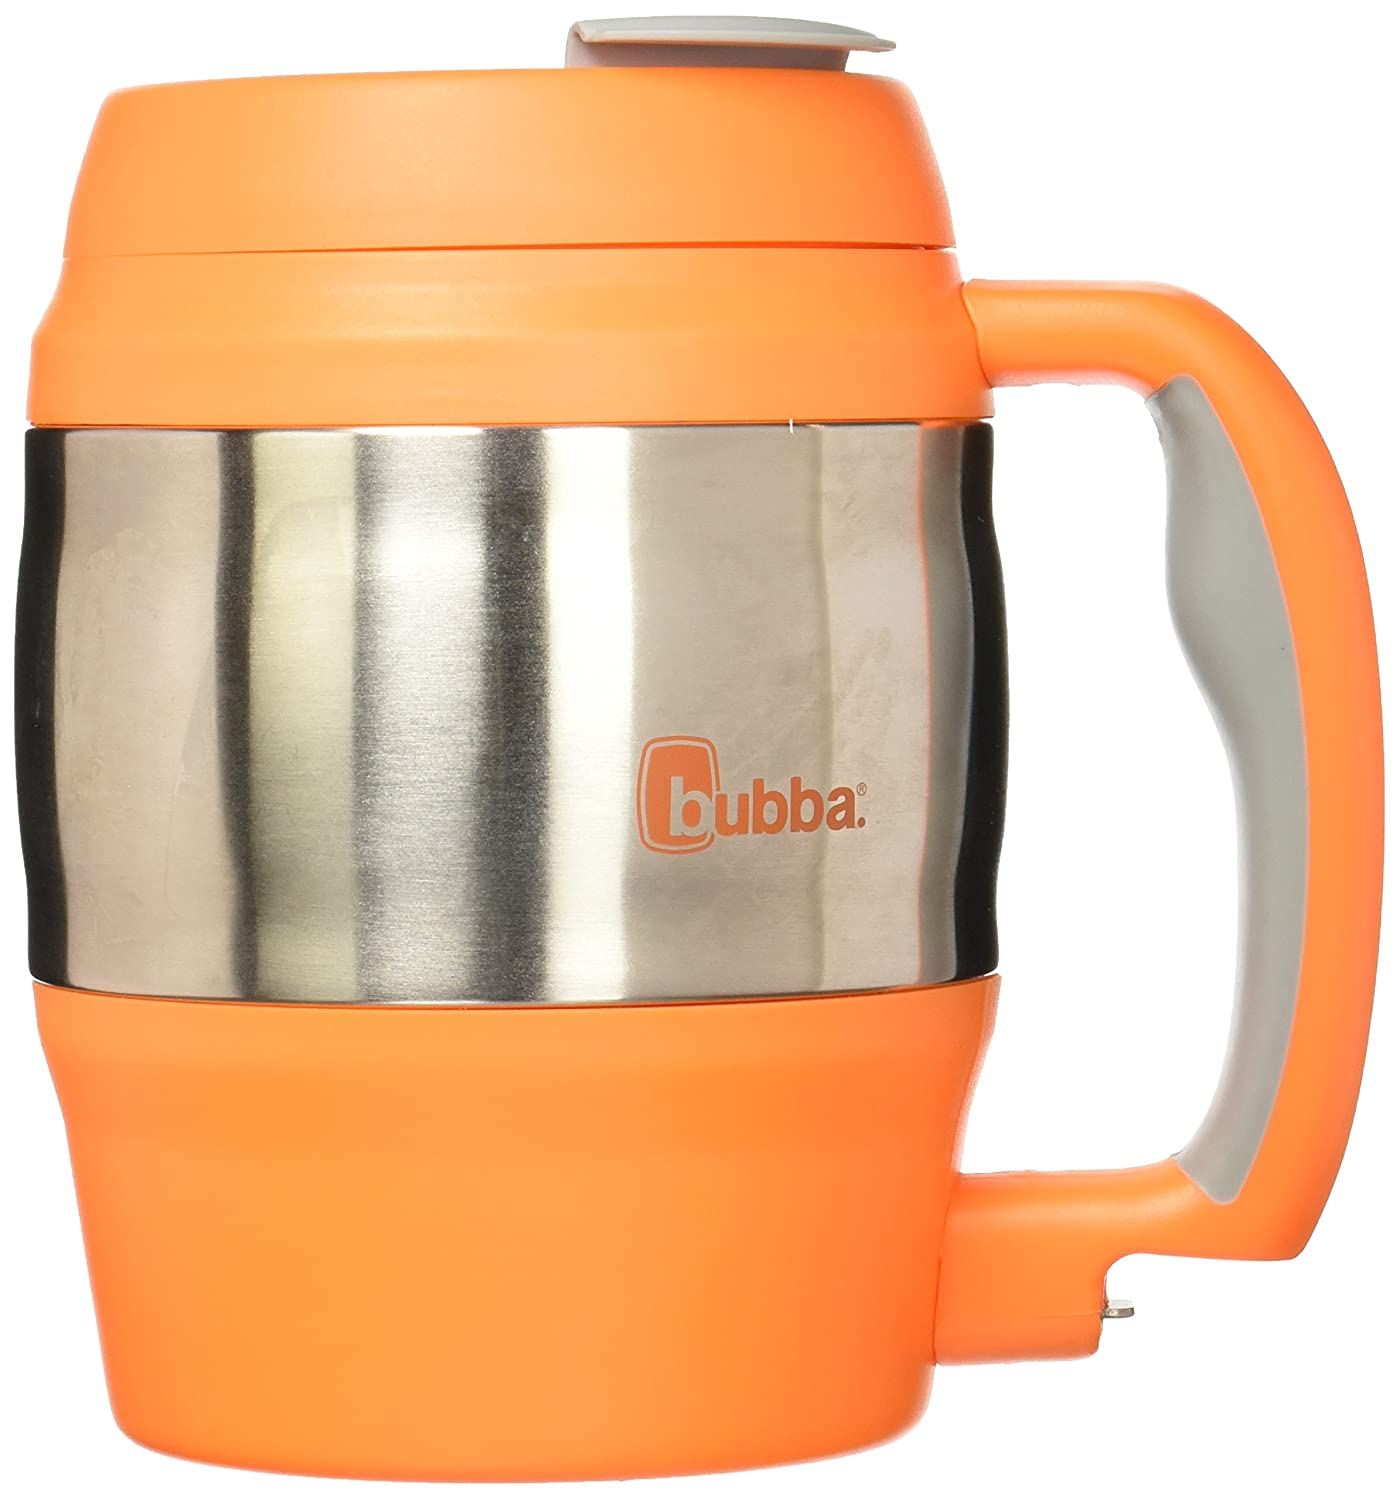 Bubba Casku320 Mug 52 Oz Calssic Orange Amazon Com Mx Deportes  # Bubba Muebles Infantiles